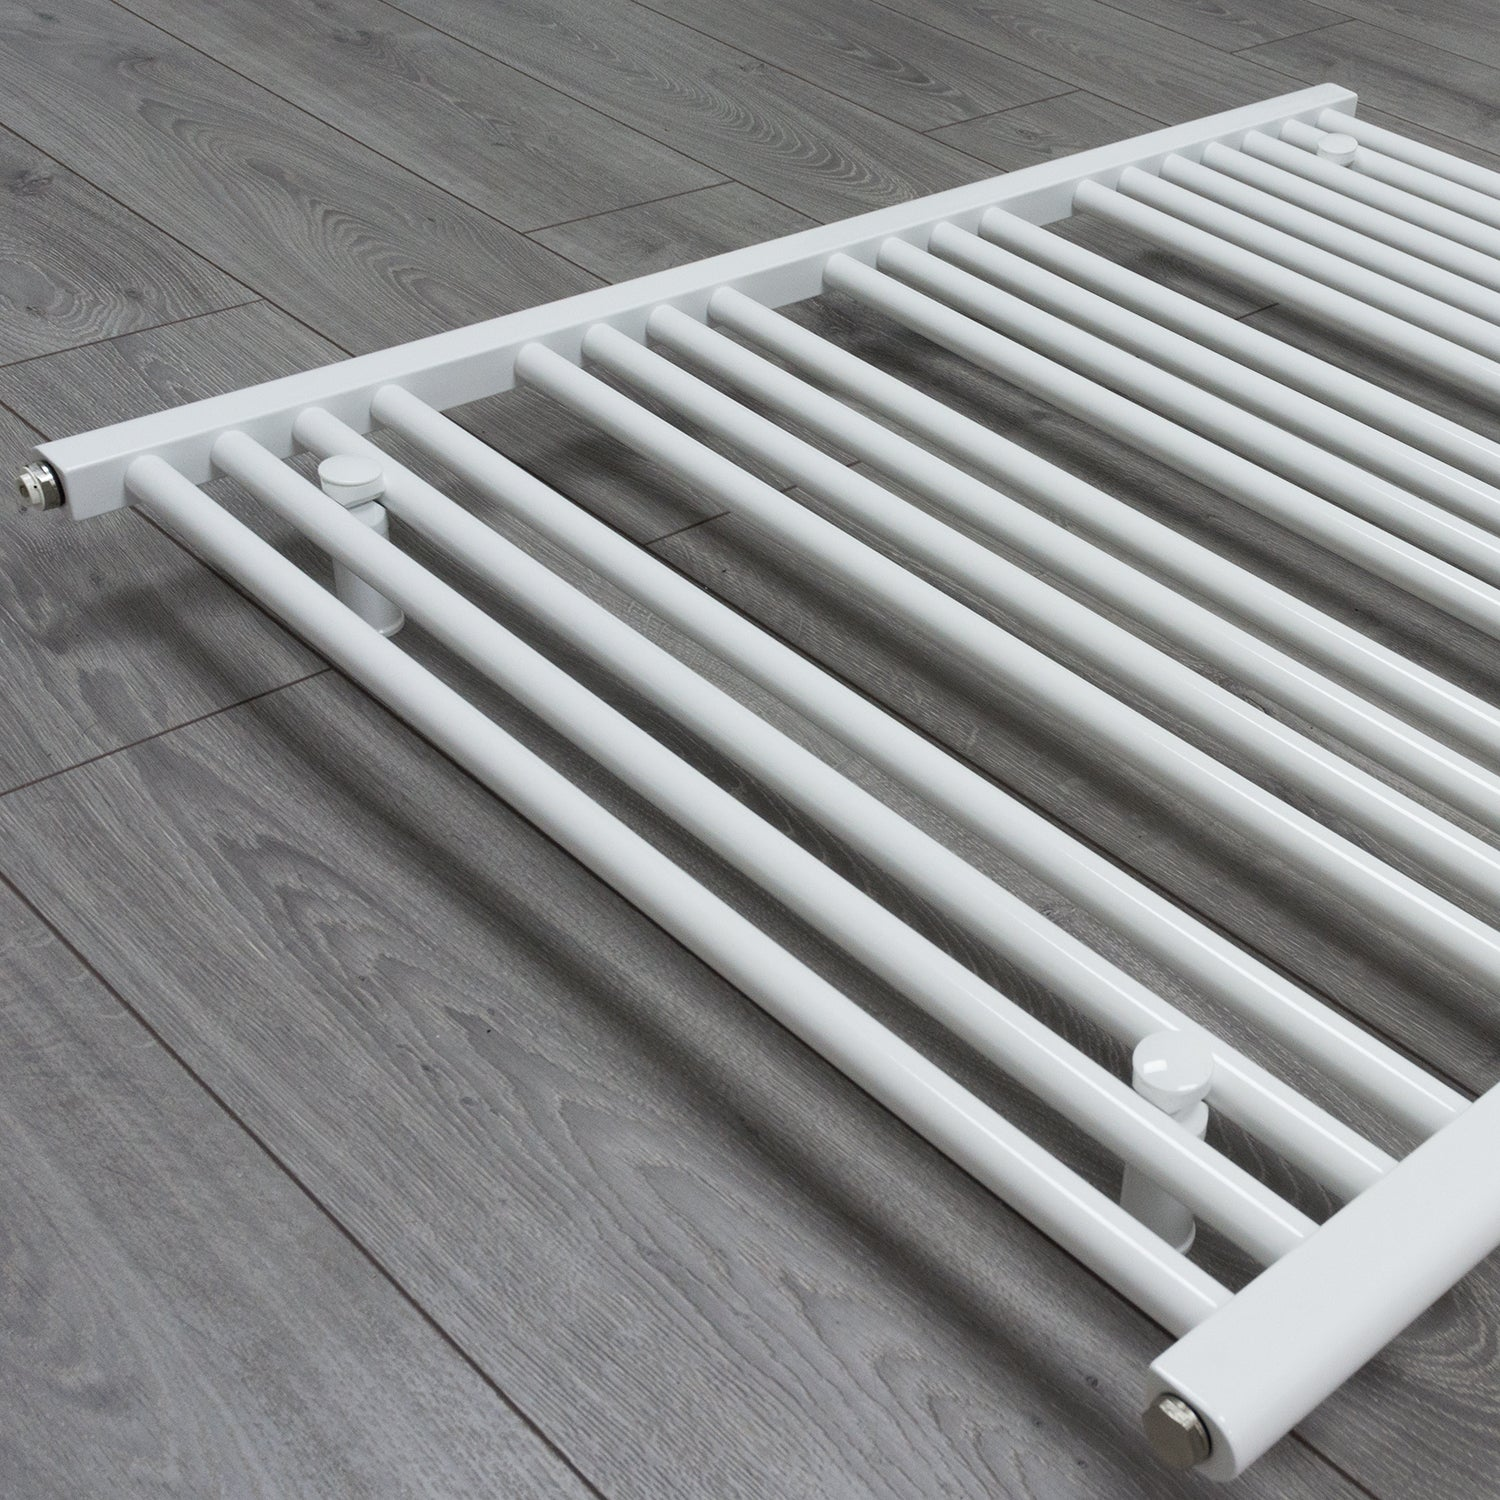 750mm x 1100mm White Heated Towel Rail Radiator Close Up Image